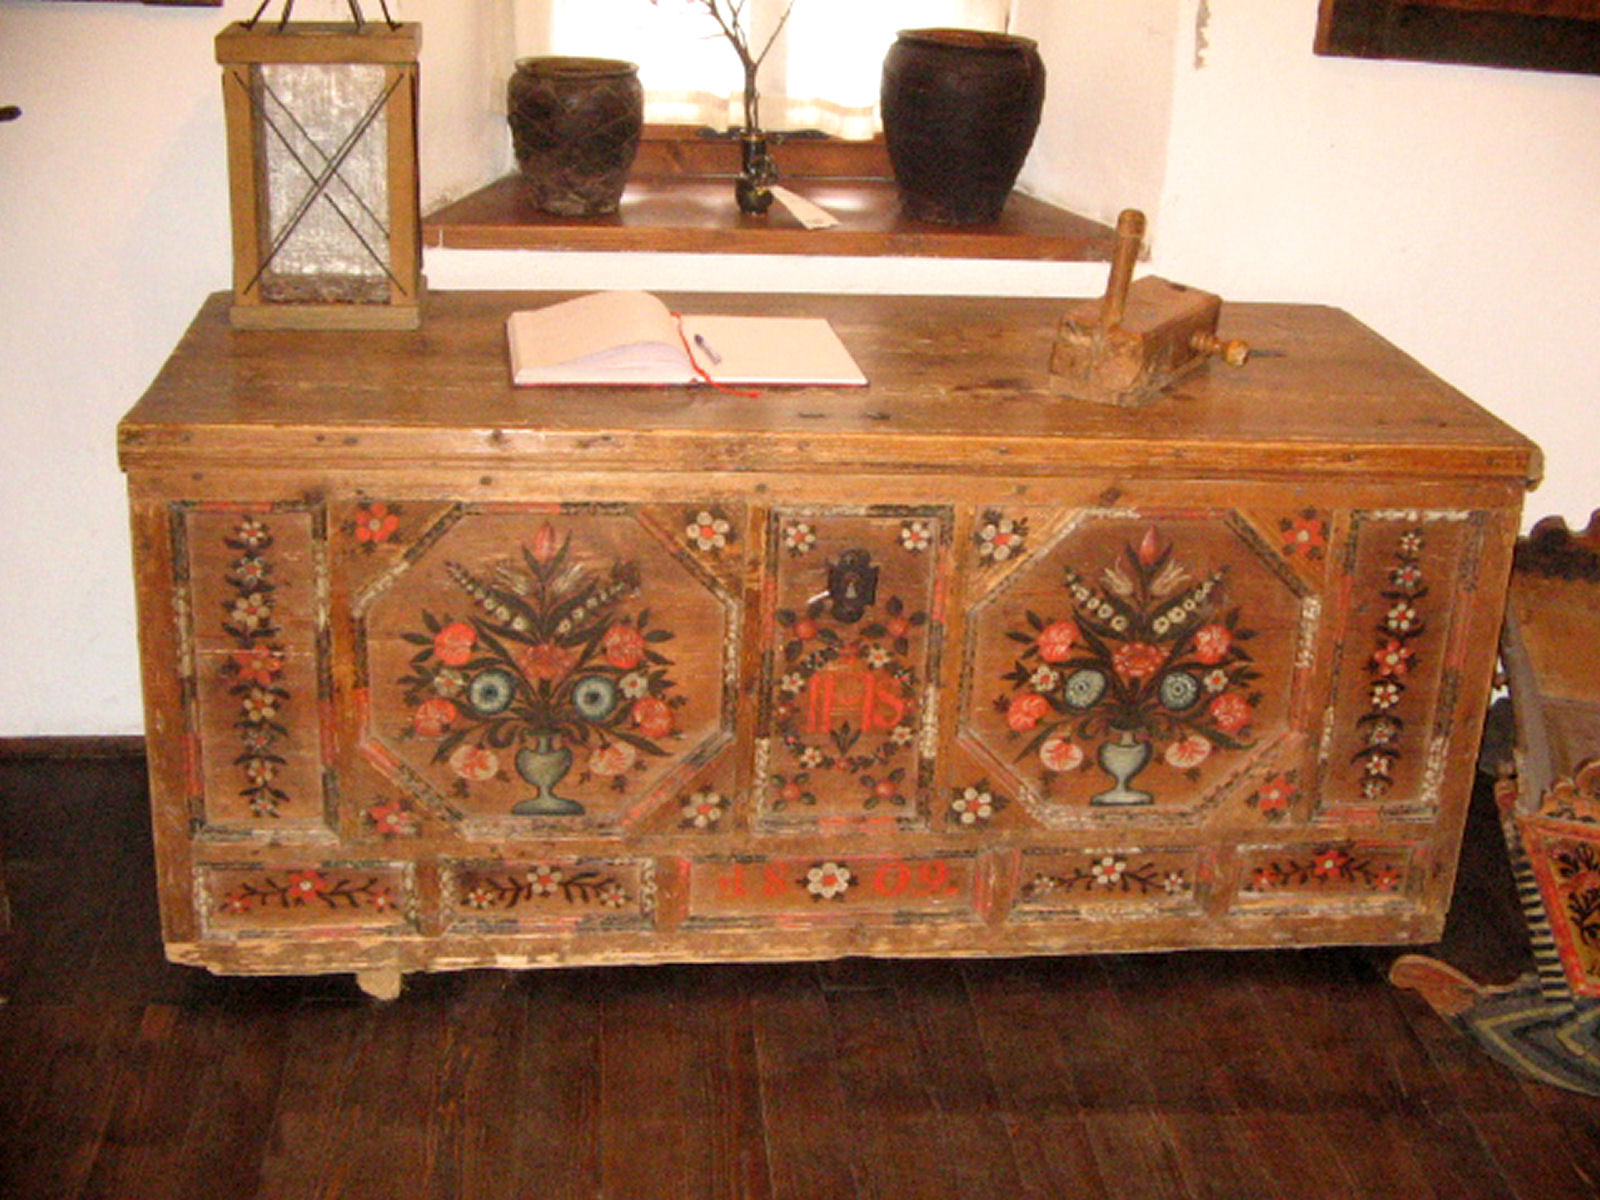 liznjek-farm-chest-kranjska-gora